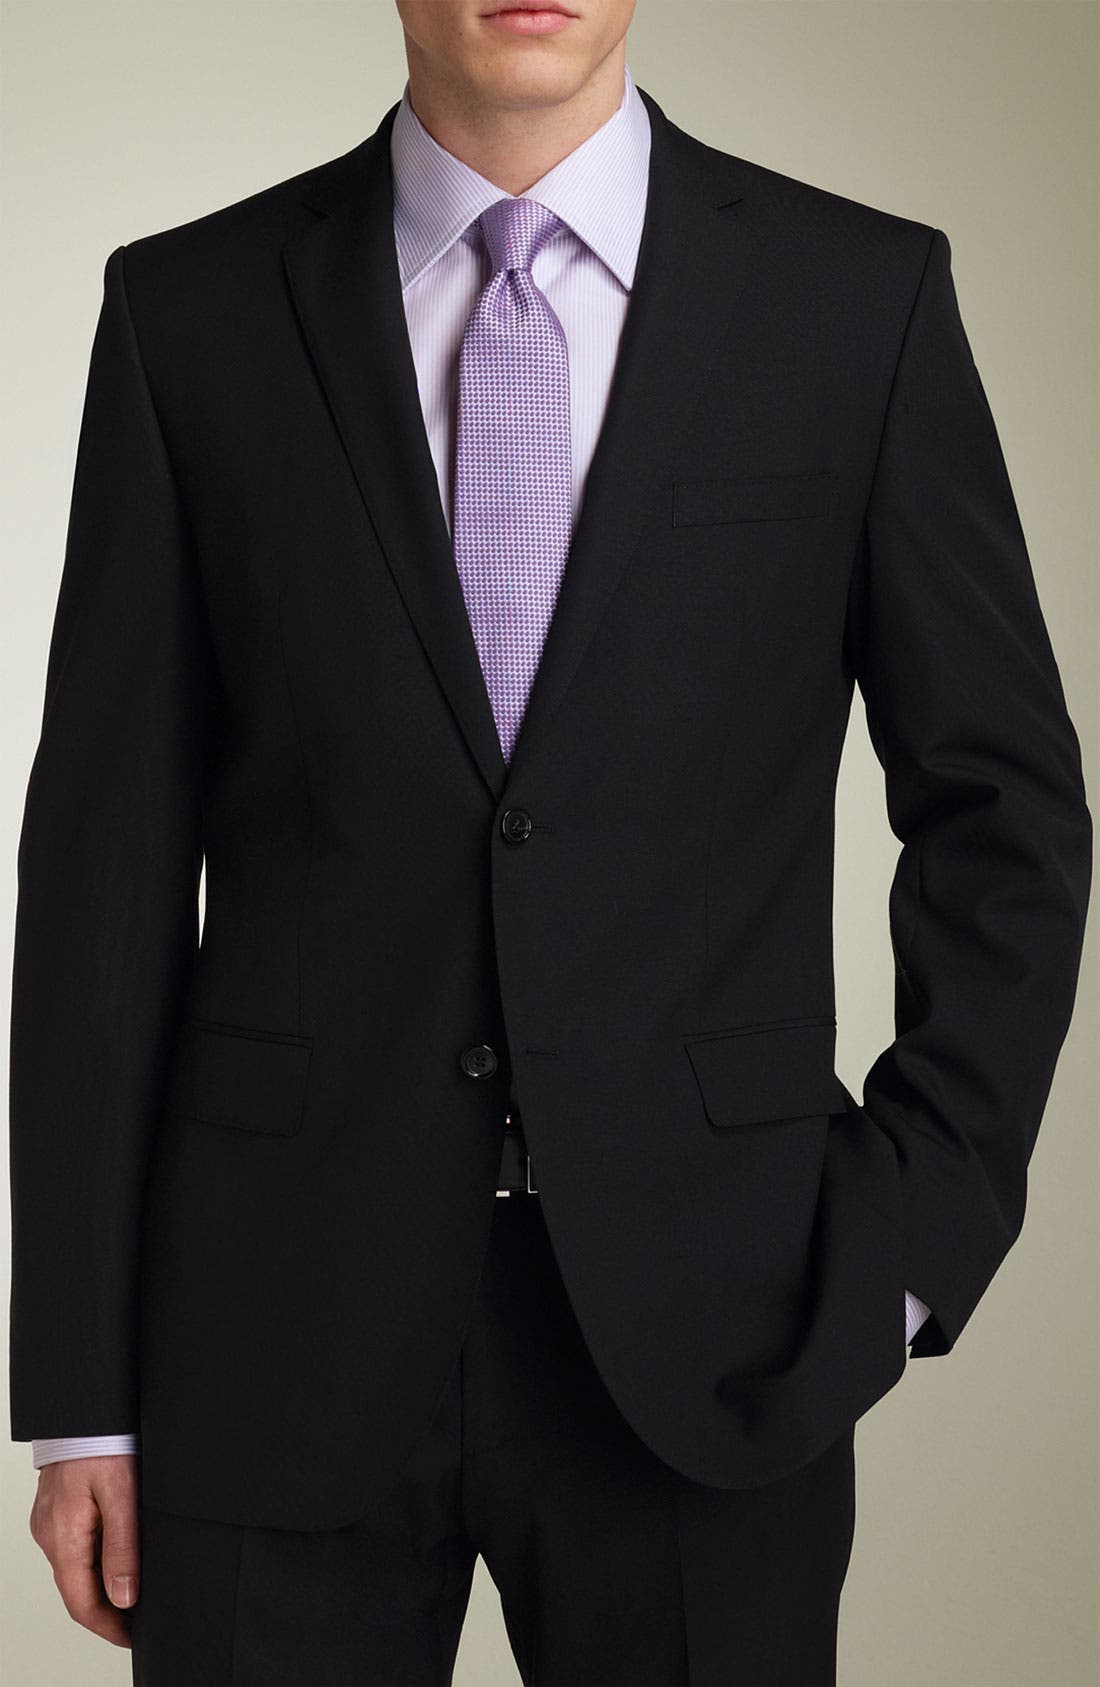 Main Image - BOSS 'Jam/Sharp' Trim Fit Black Virgin Wool Suit